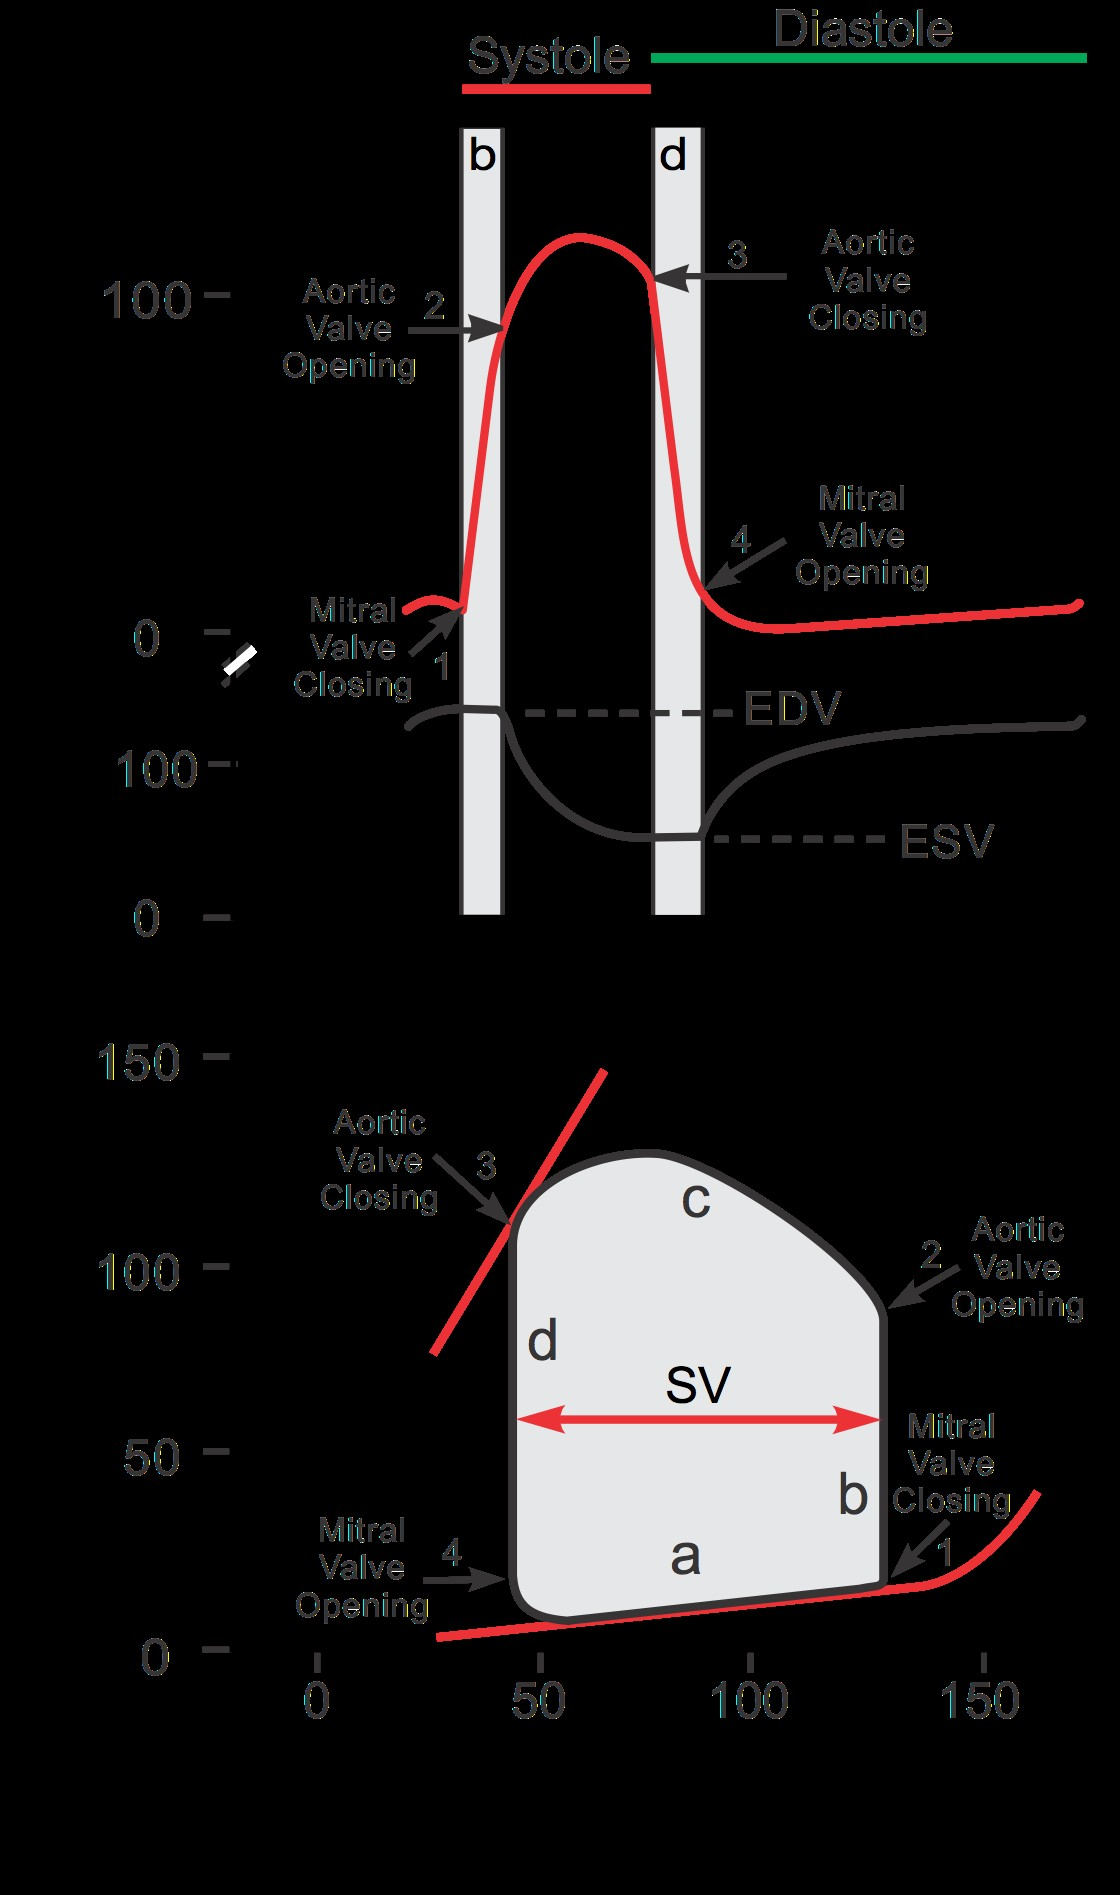 Carnot Engine Pv Diagram Carnot Cycle Of Carnot Engine Pv Diagram